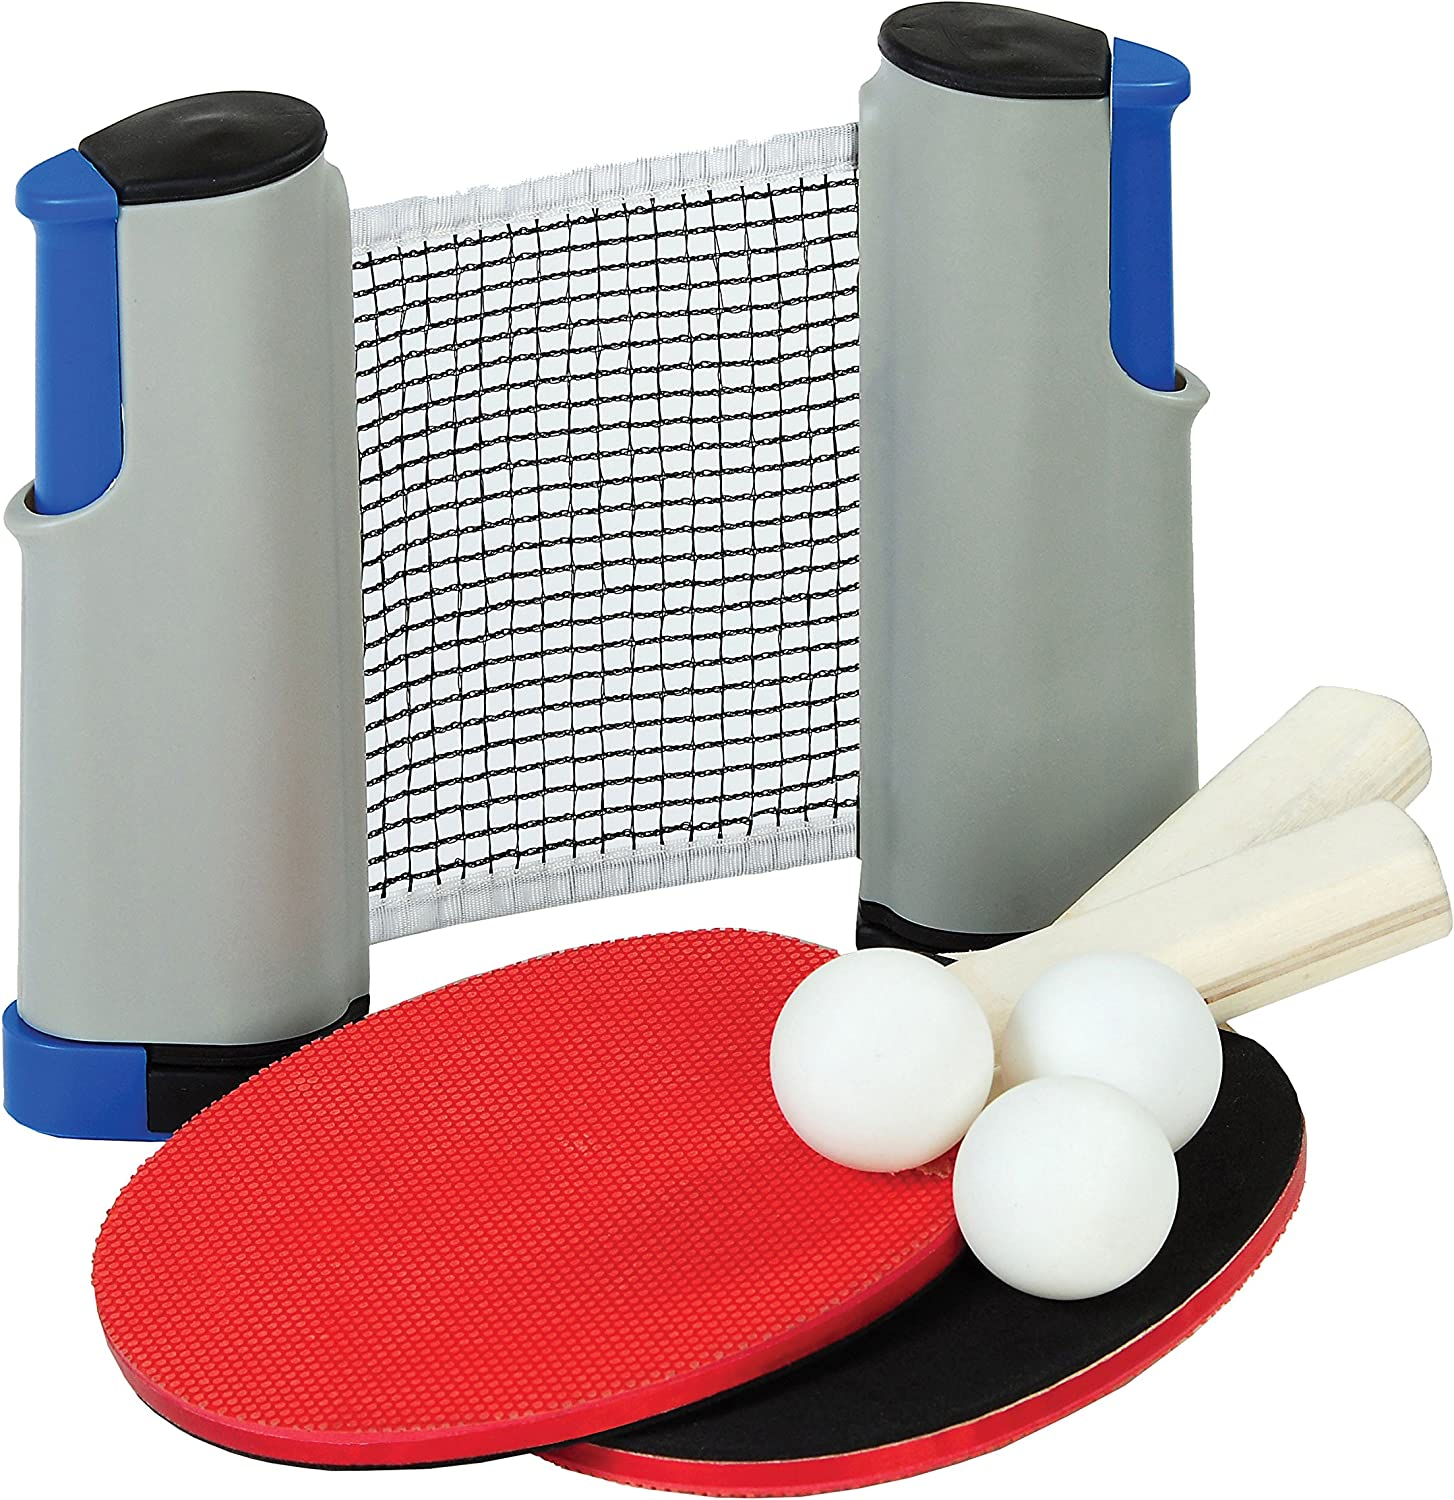 Outside Inside Freestyle Table Tennis Set, Lightweight, Compact, Travel Size for Home, Cabin and Travel